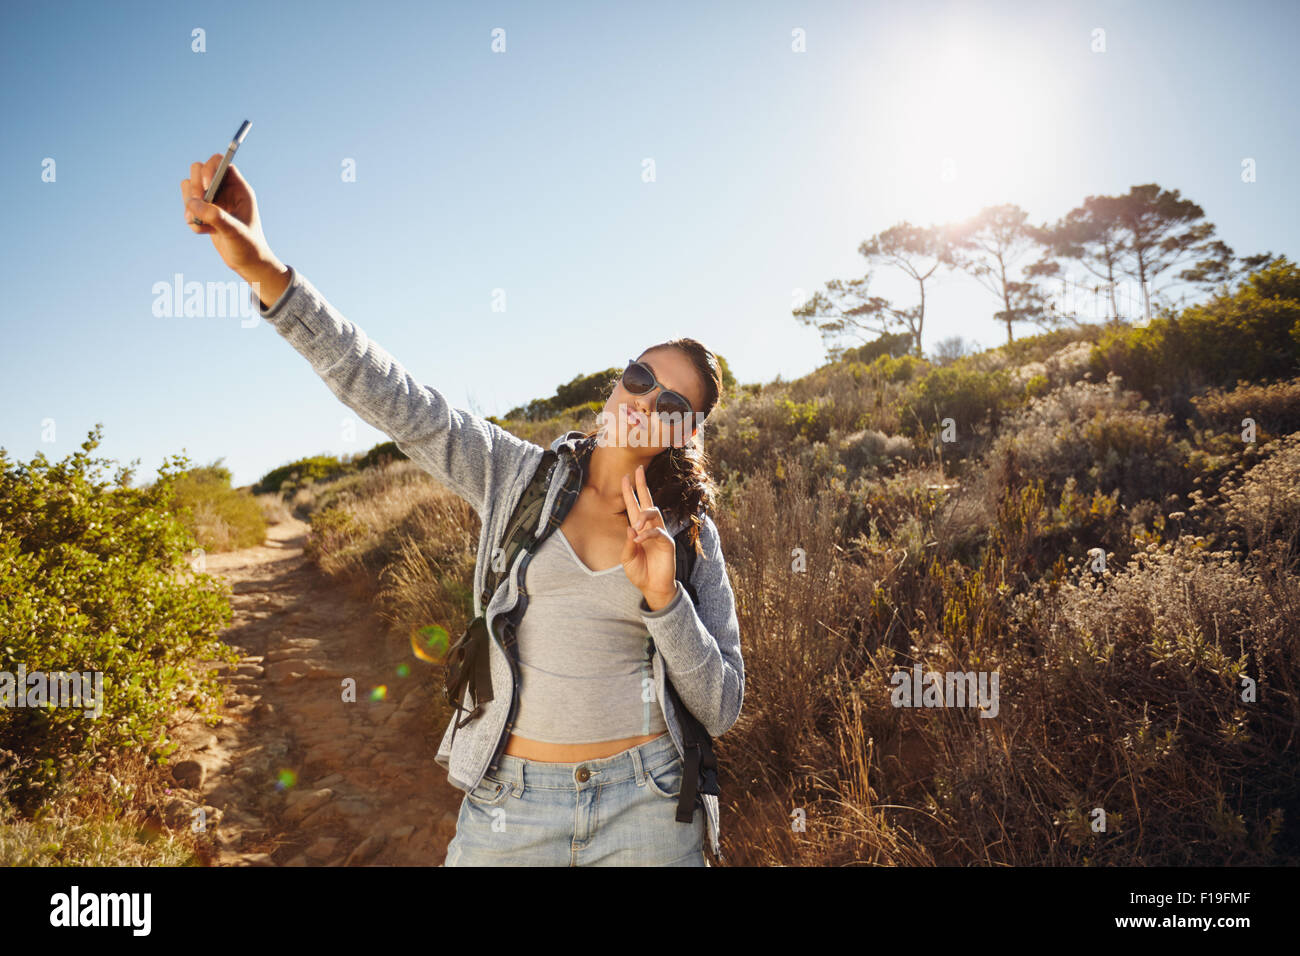 Happy and energetic young woman taking a selfie. She is holding the mobile phone camera high posing and gesturing - Stock Image